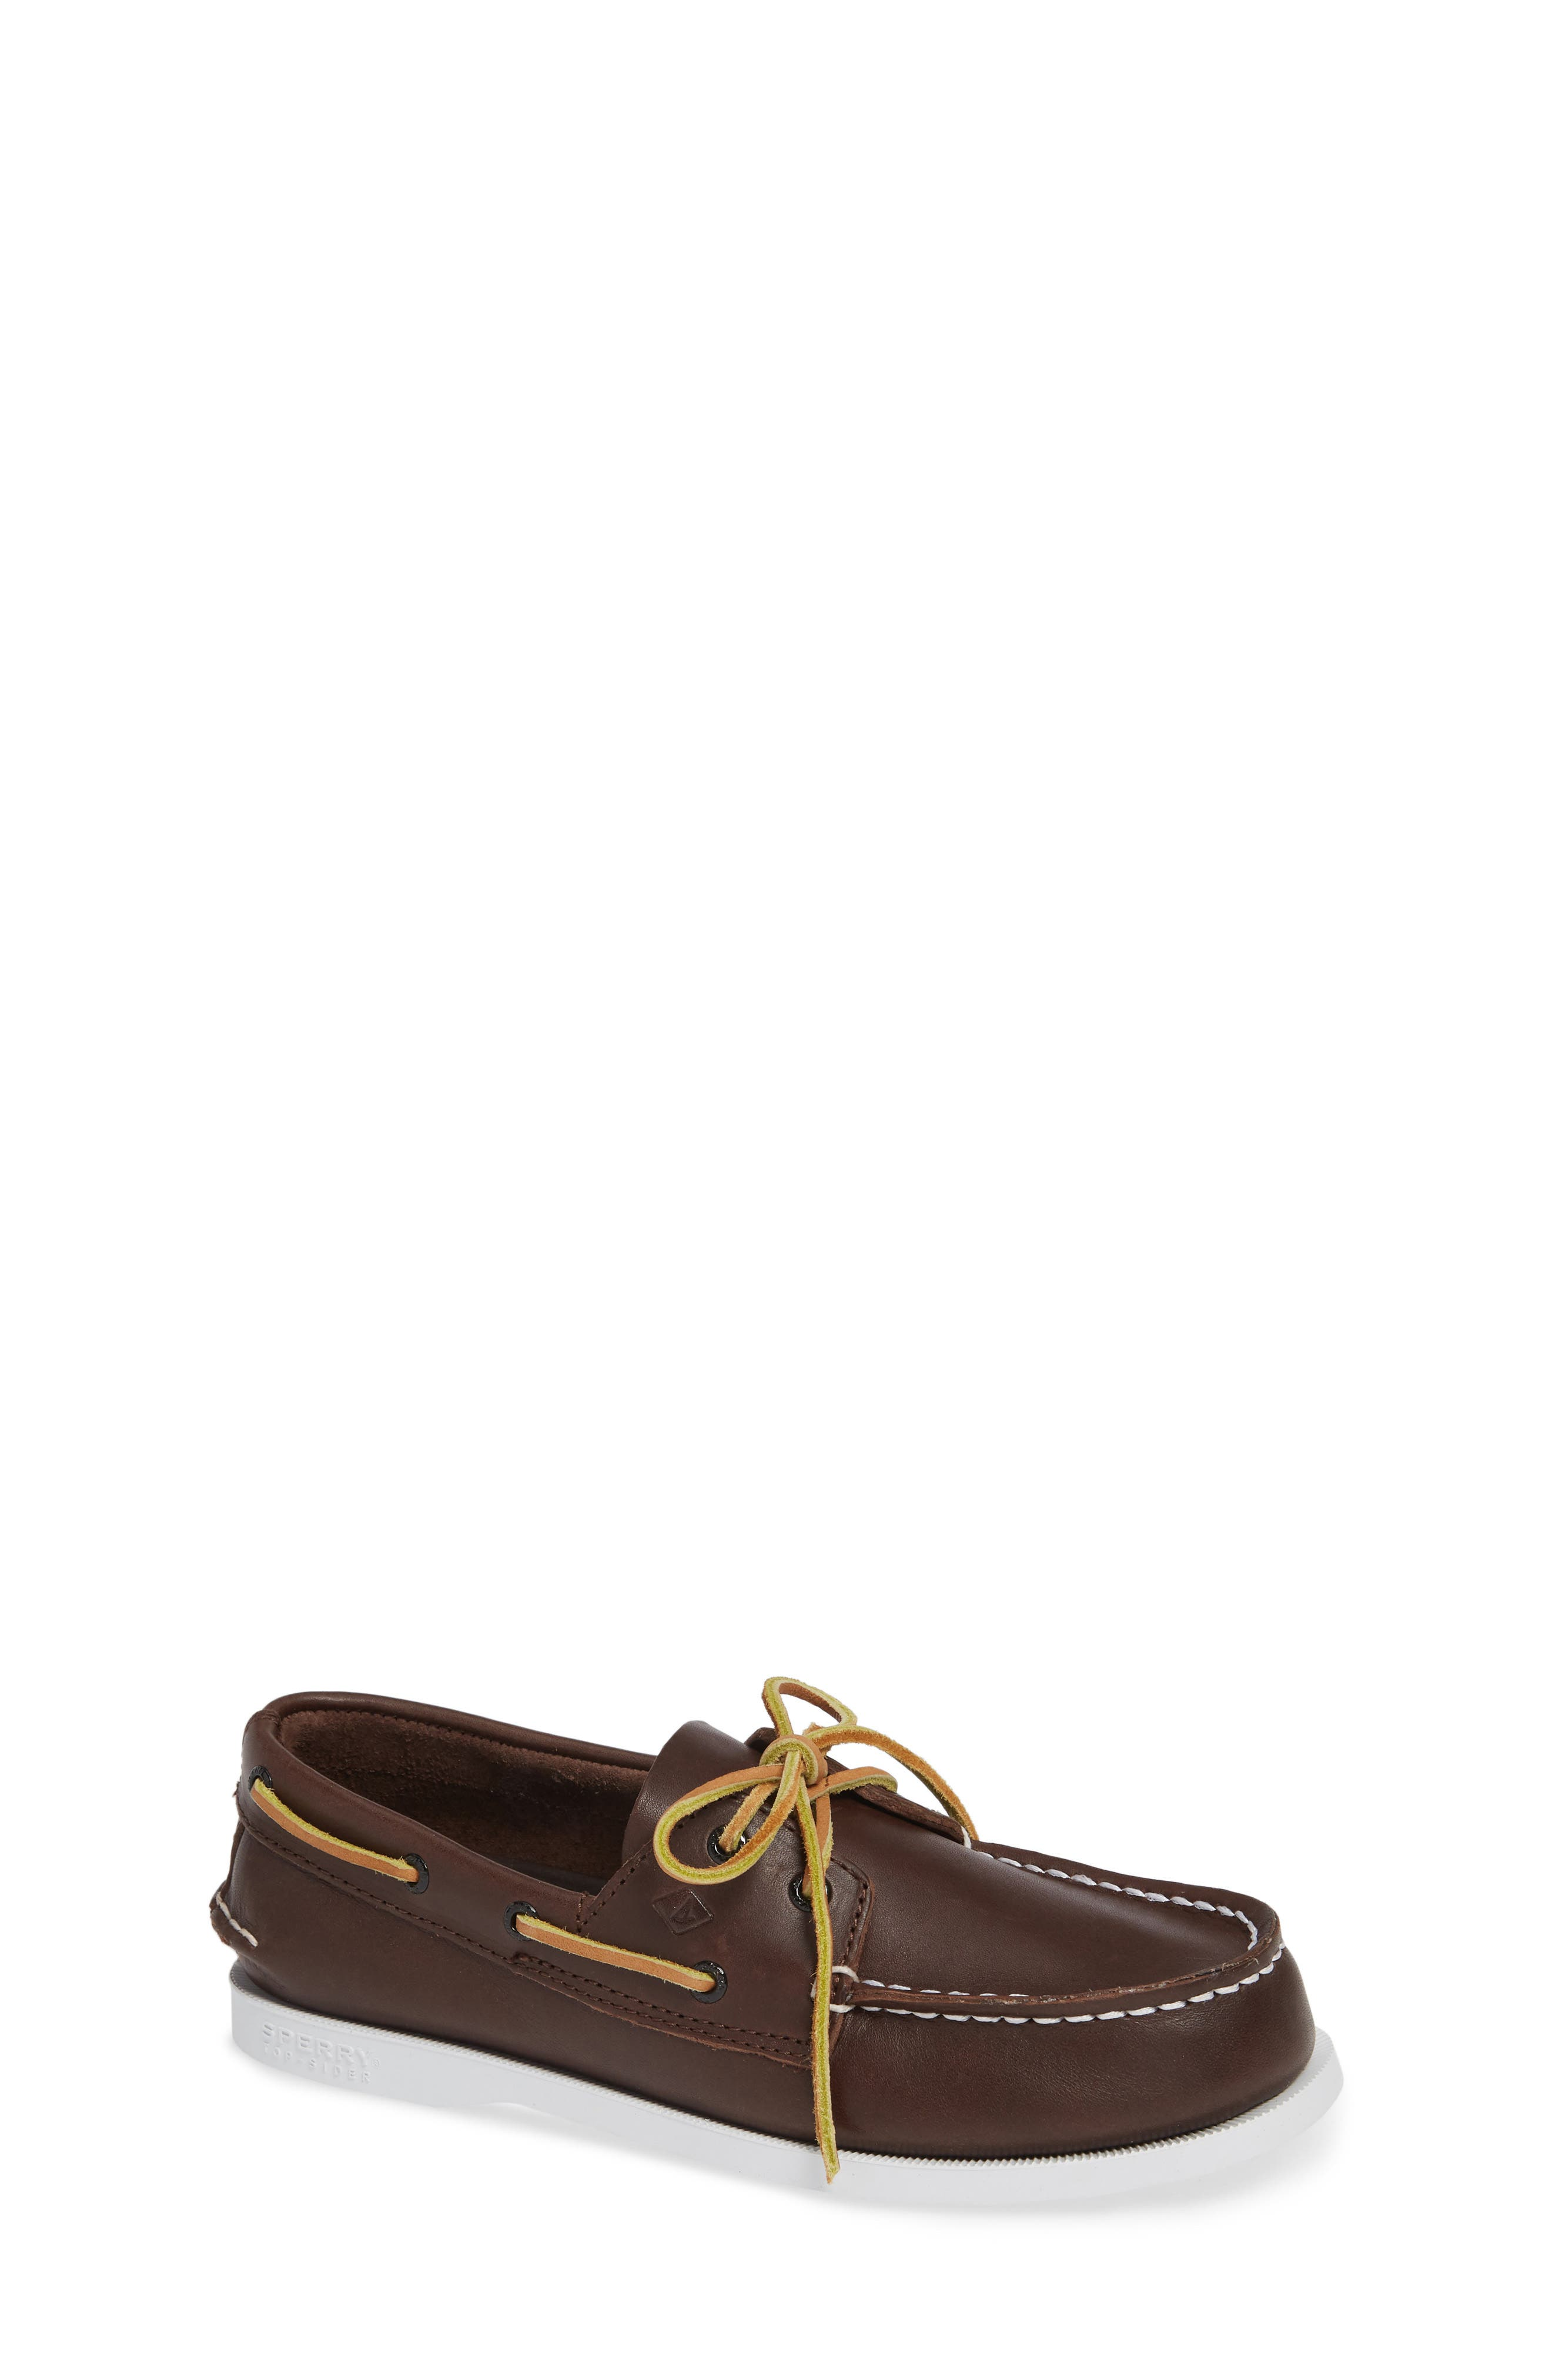 SPERRY KIDS, 'Authentic Original' Boat Shoe, Alternate thumbnail 2, color, BROWN LEATHER